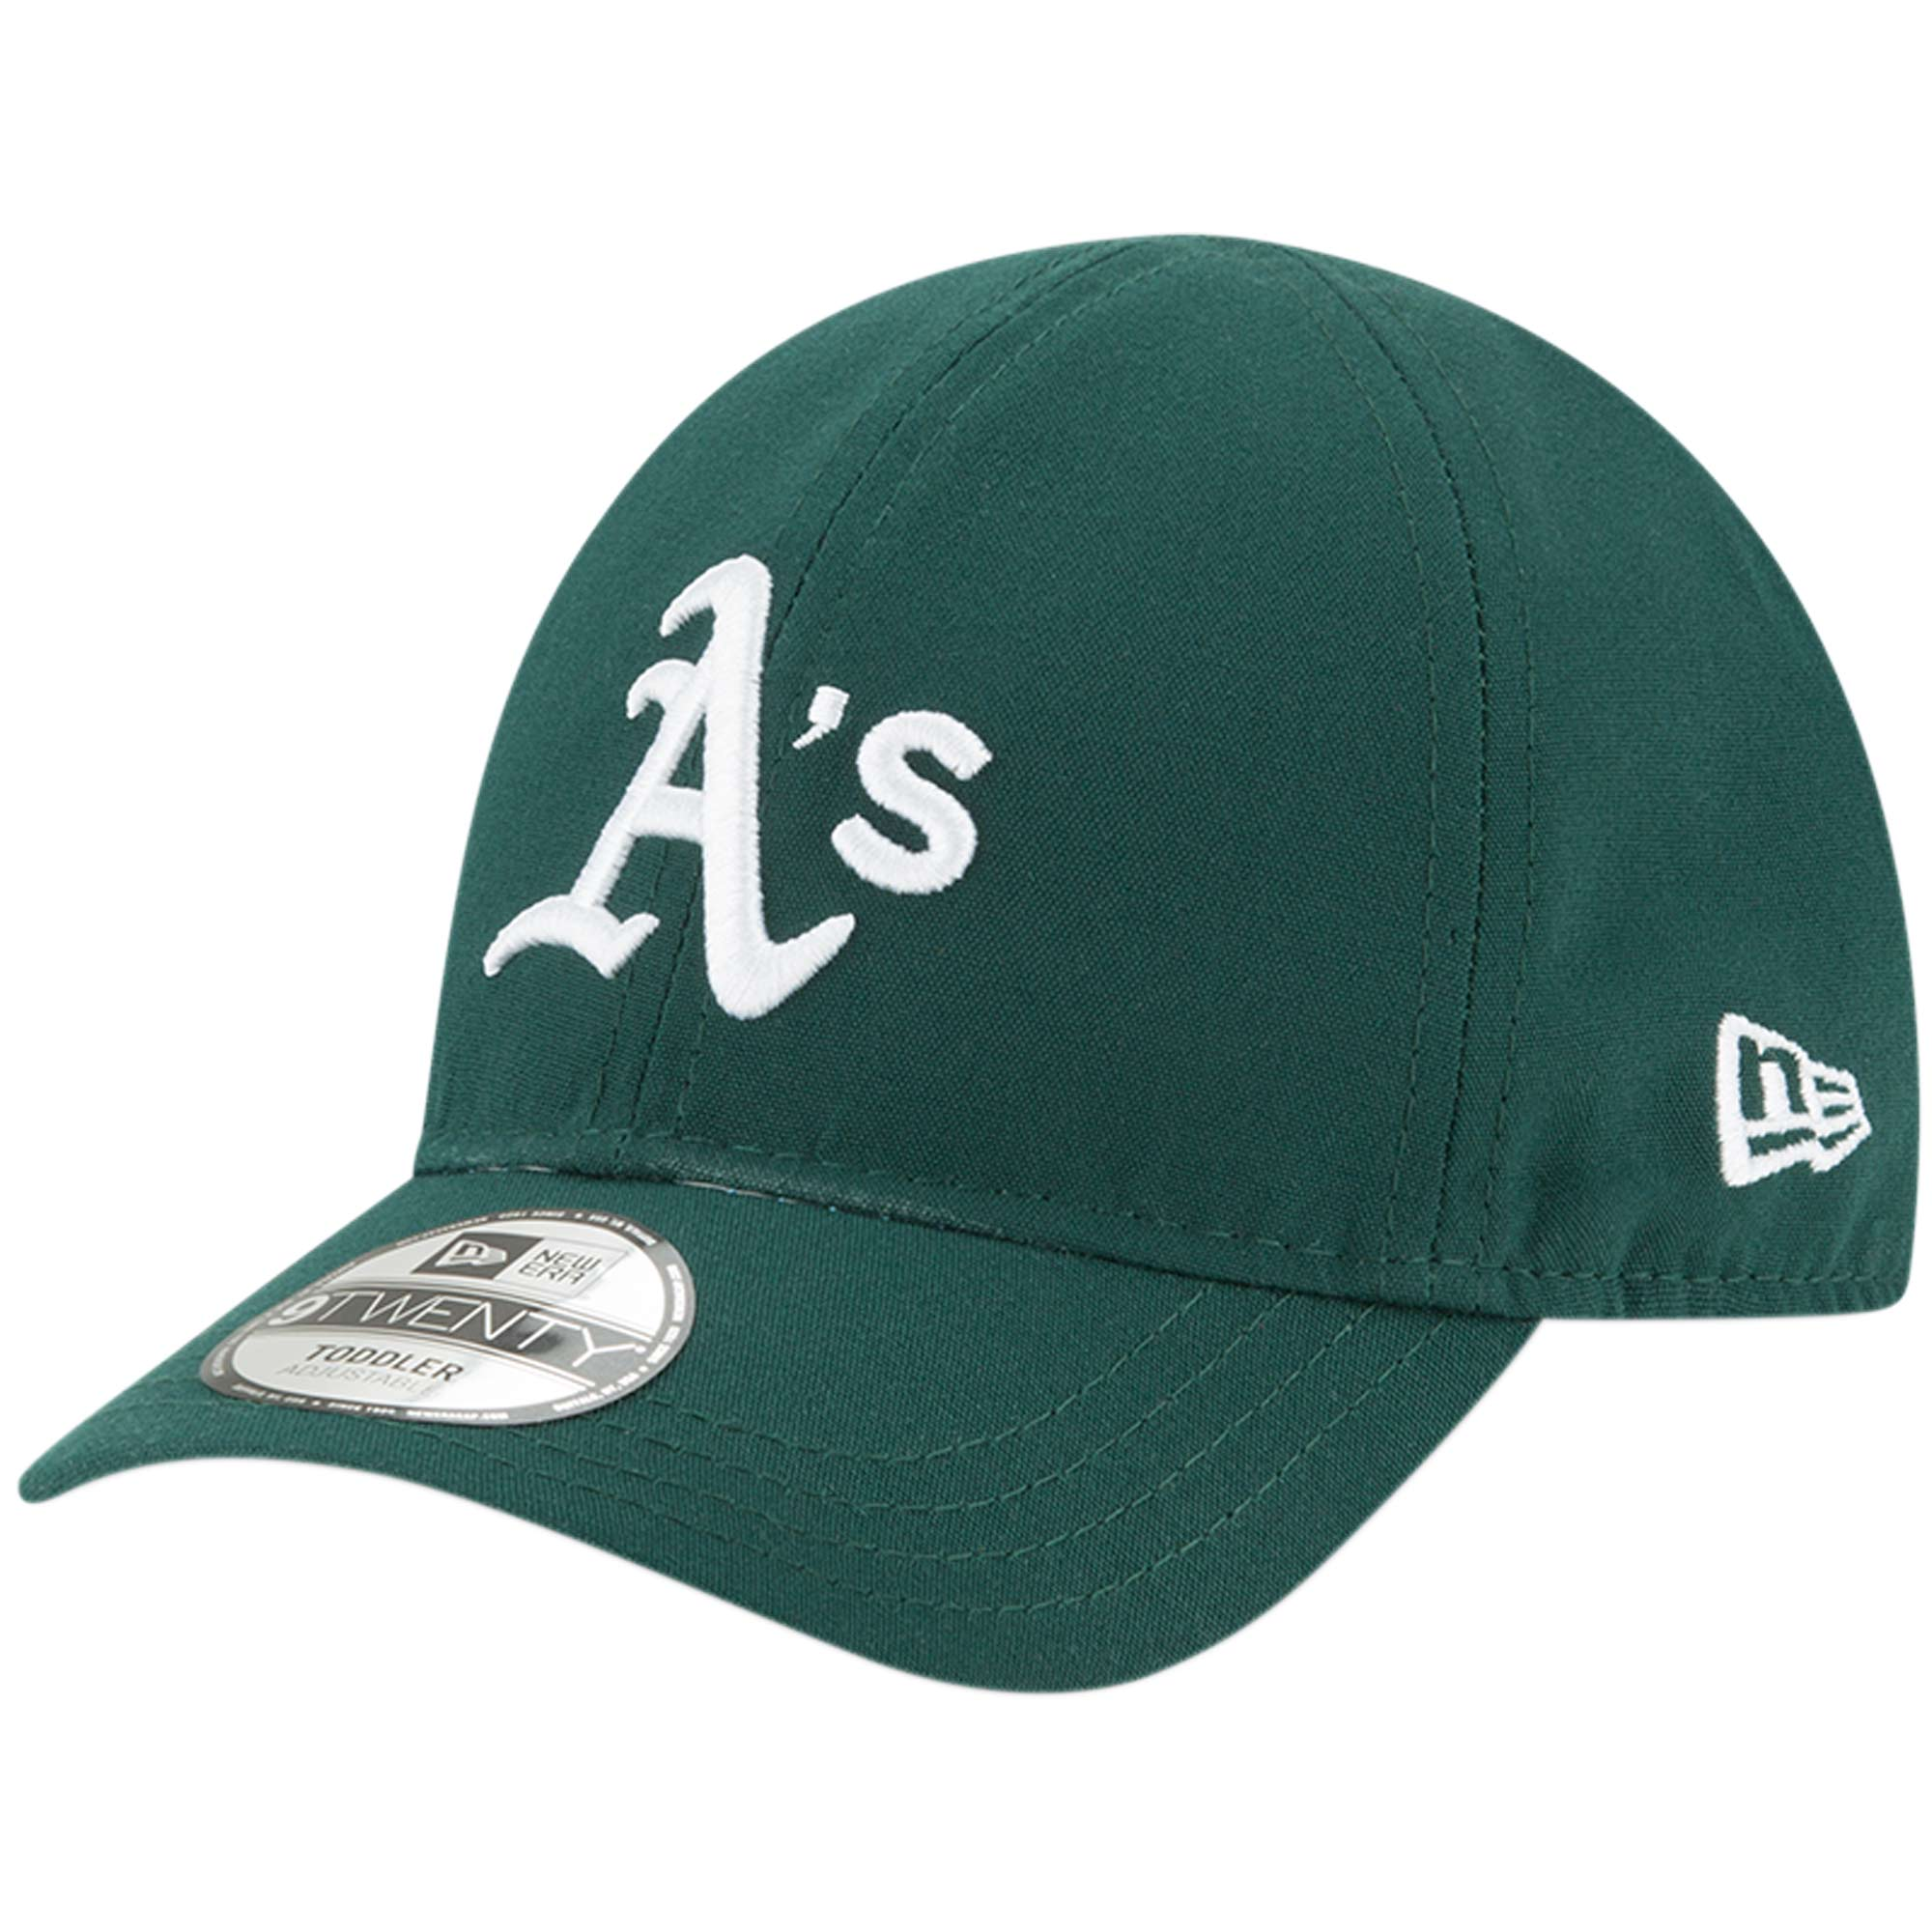 Oakland Athletics New Era Toddler My 1st 9TWENTY Adjustable Hat - Green - OSFA